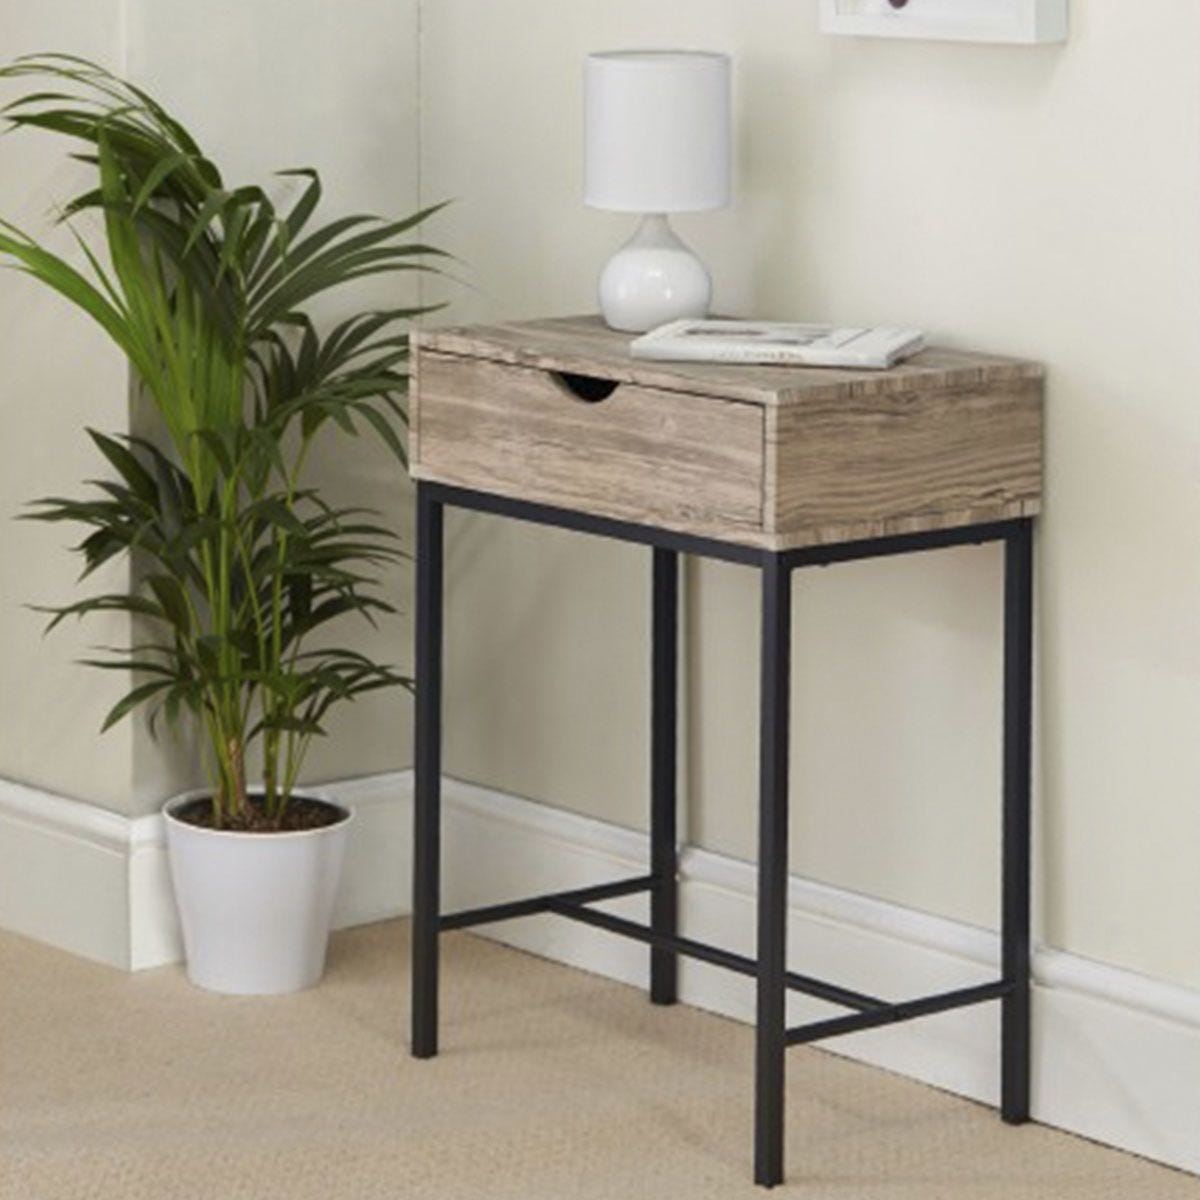 Kubik Console Table with Drawer